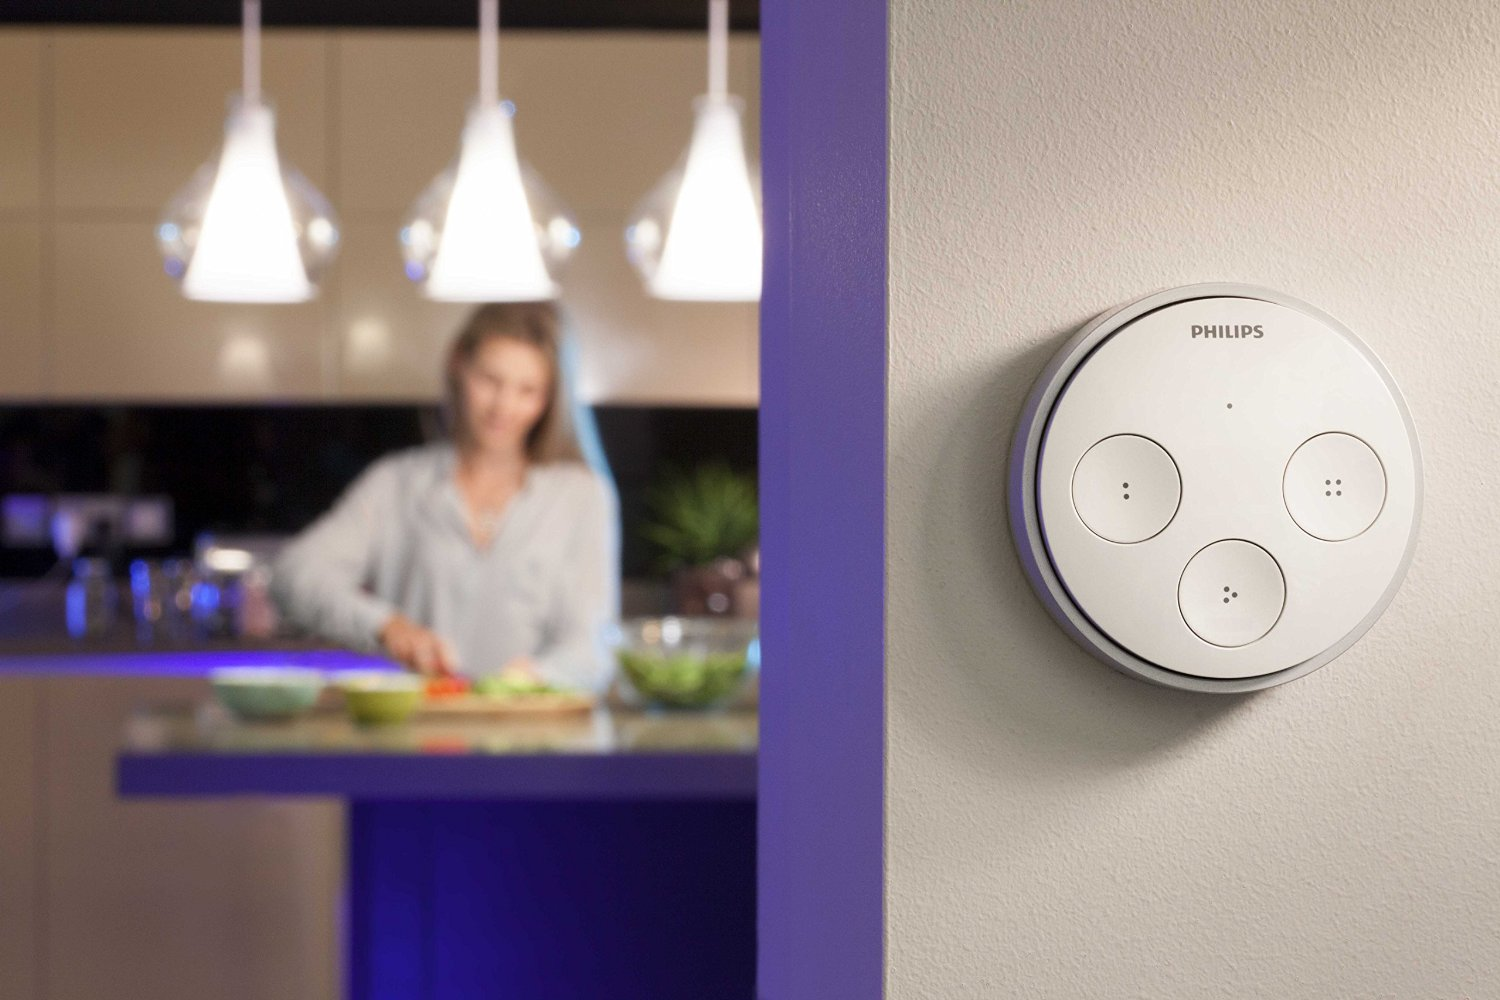 Philips 452532 Personal Wireless Lighting Hue Tap Switch, $49